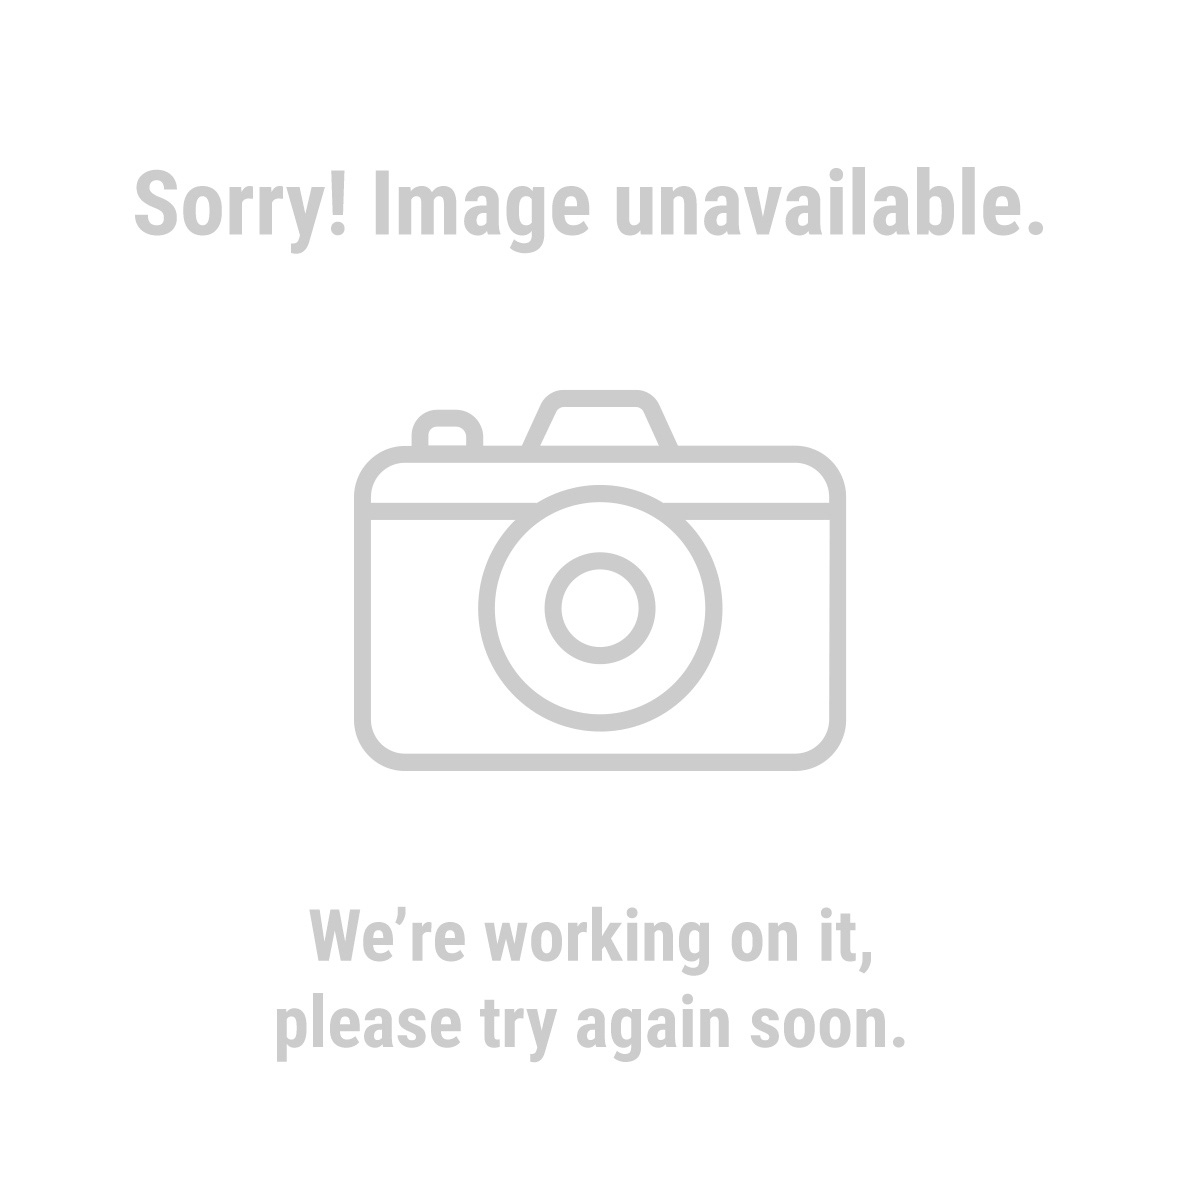 Voyager 61644 Magnetic Wrist Band